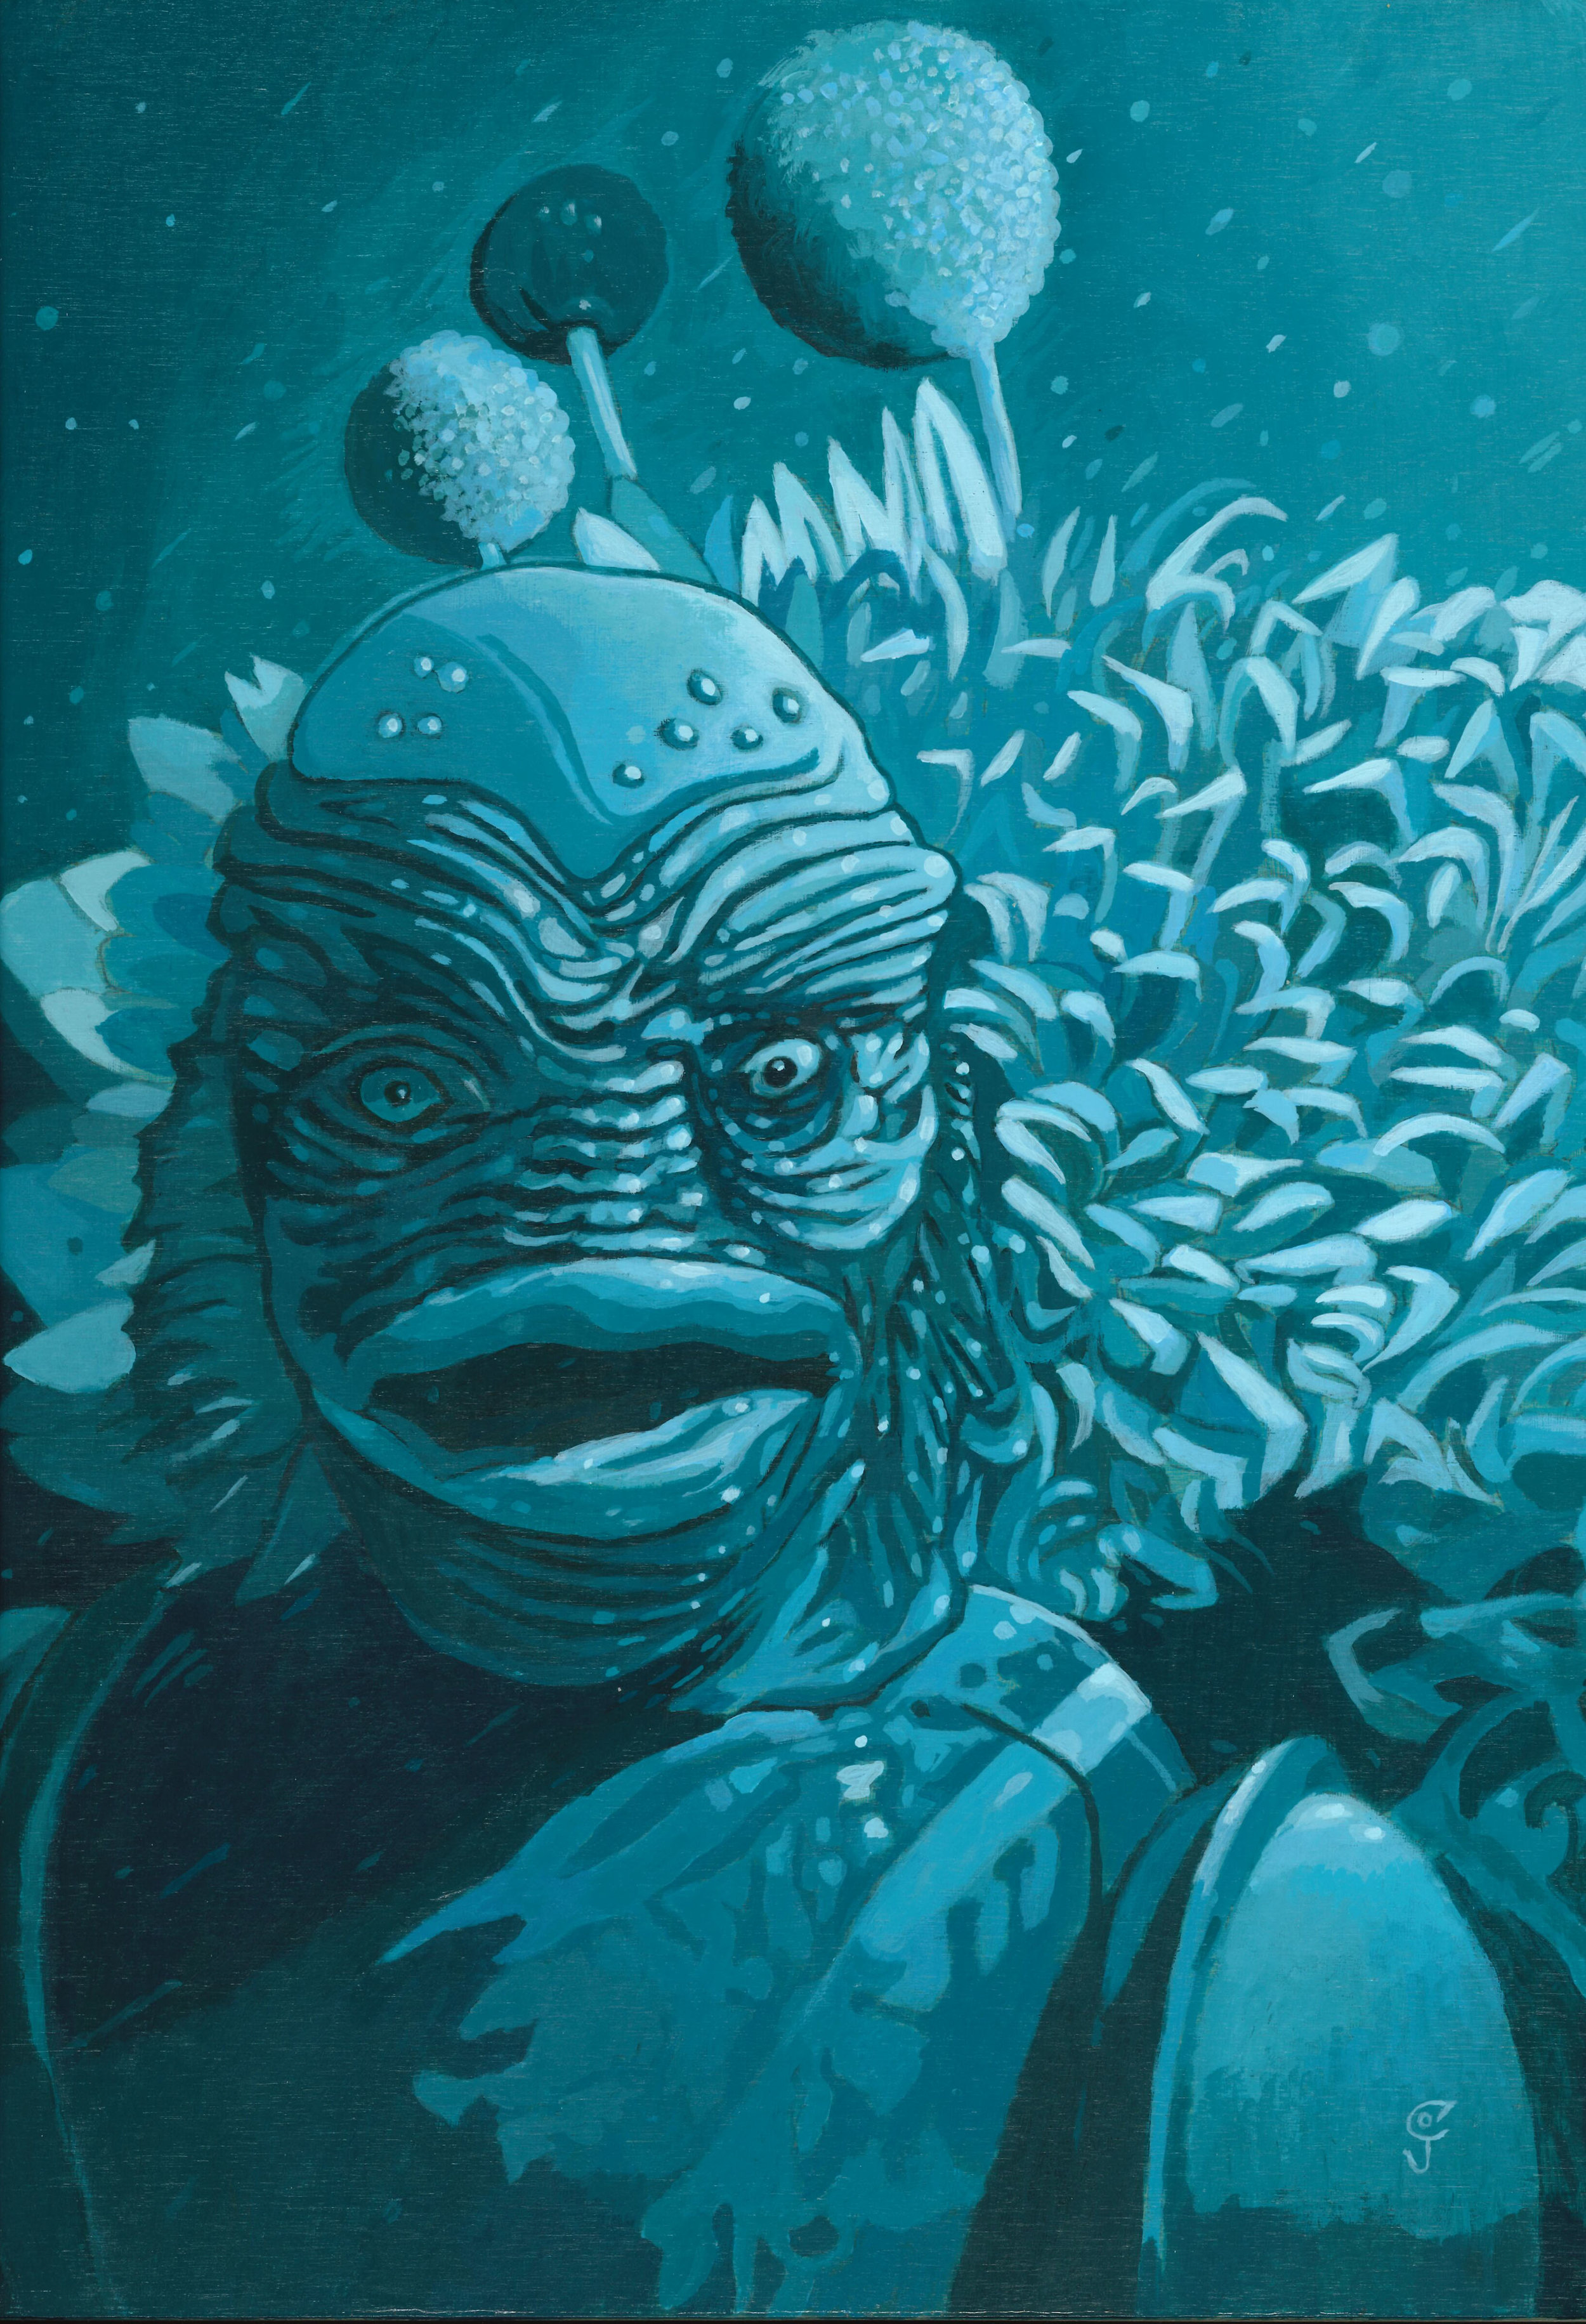 Christopher Olson-Creature from the Black Lagoon-Acrylic-12x16in-2015-$1400.00.jpg